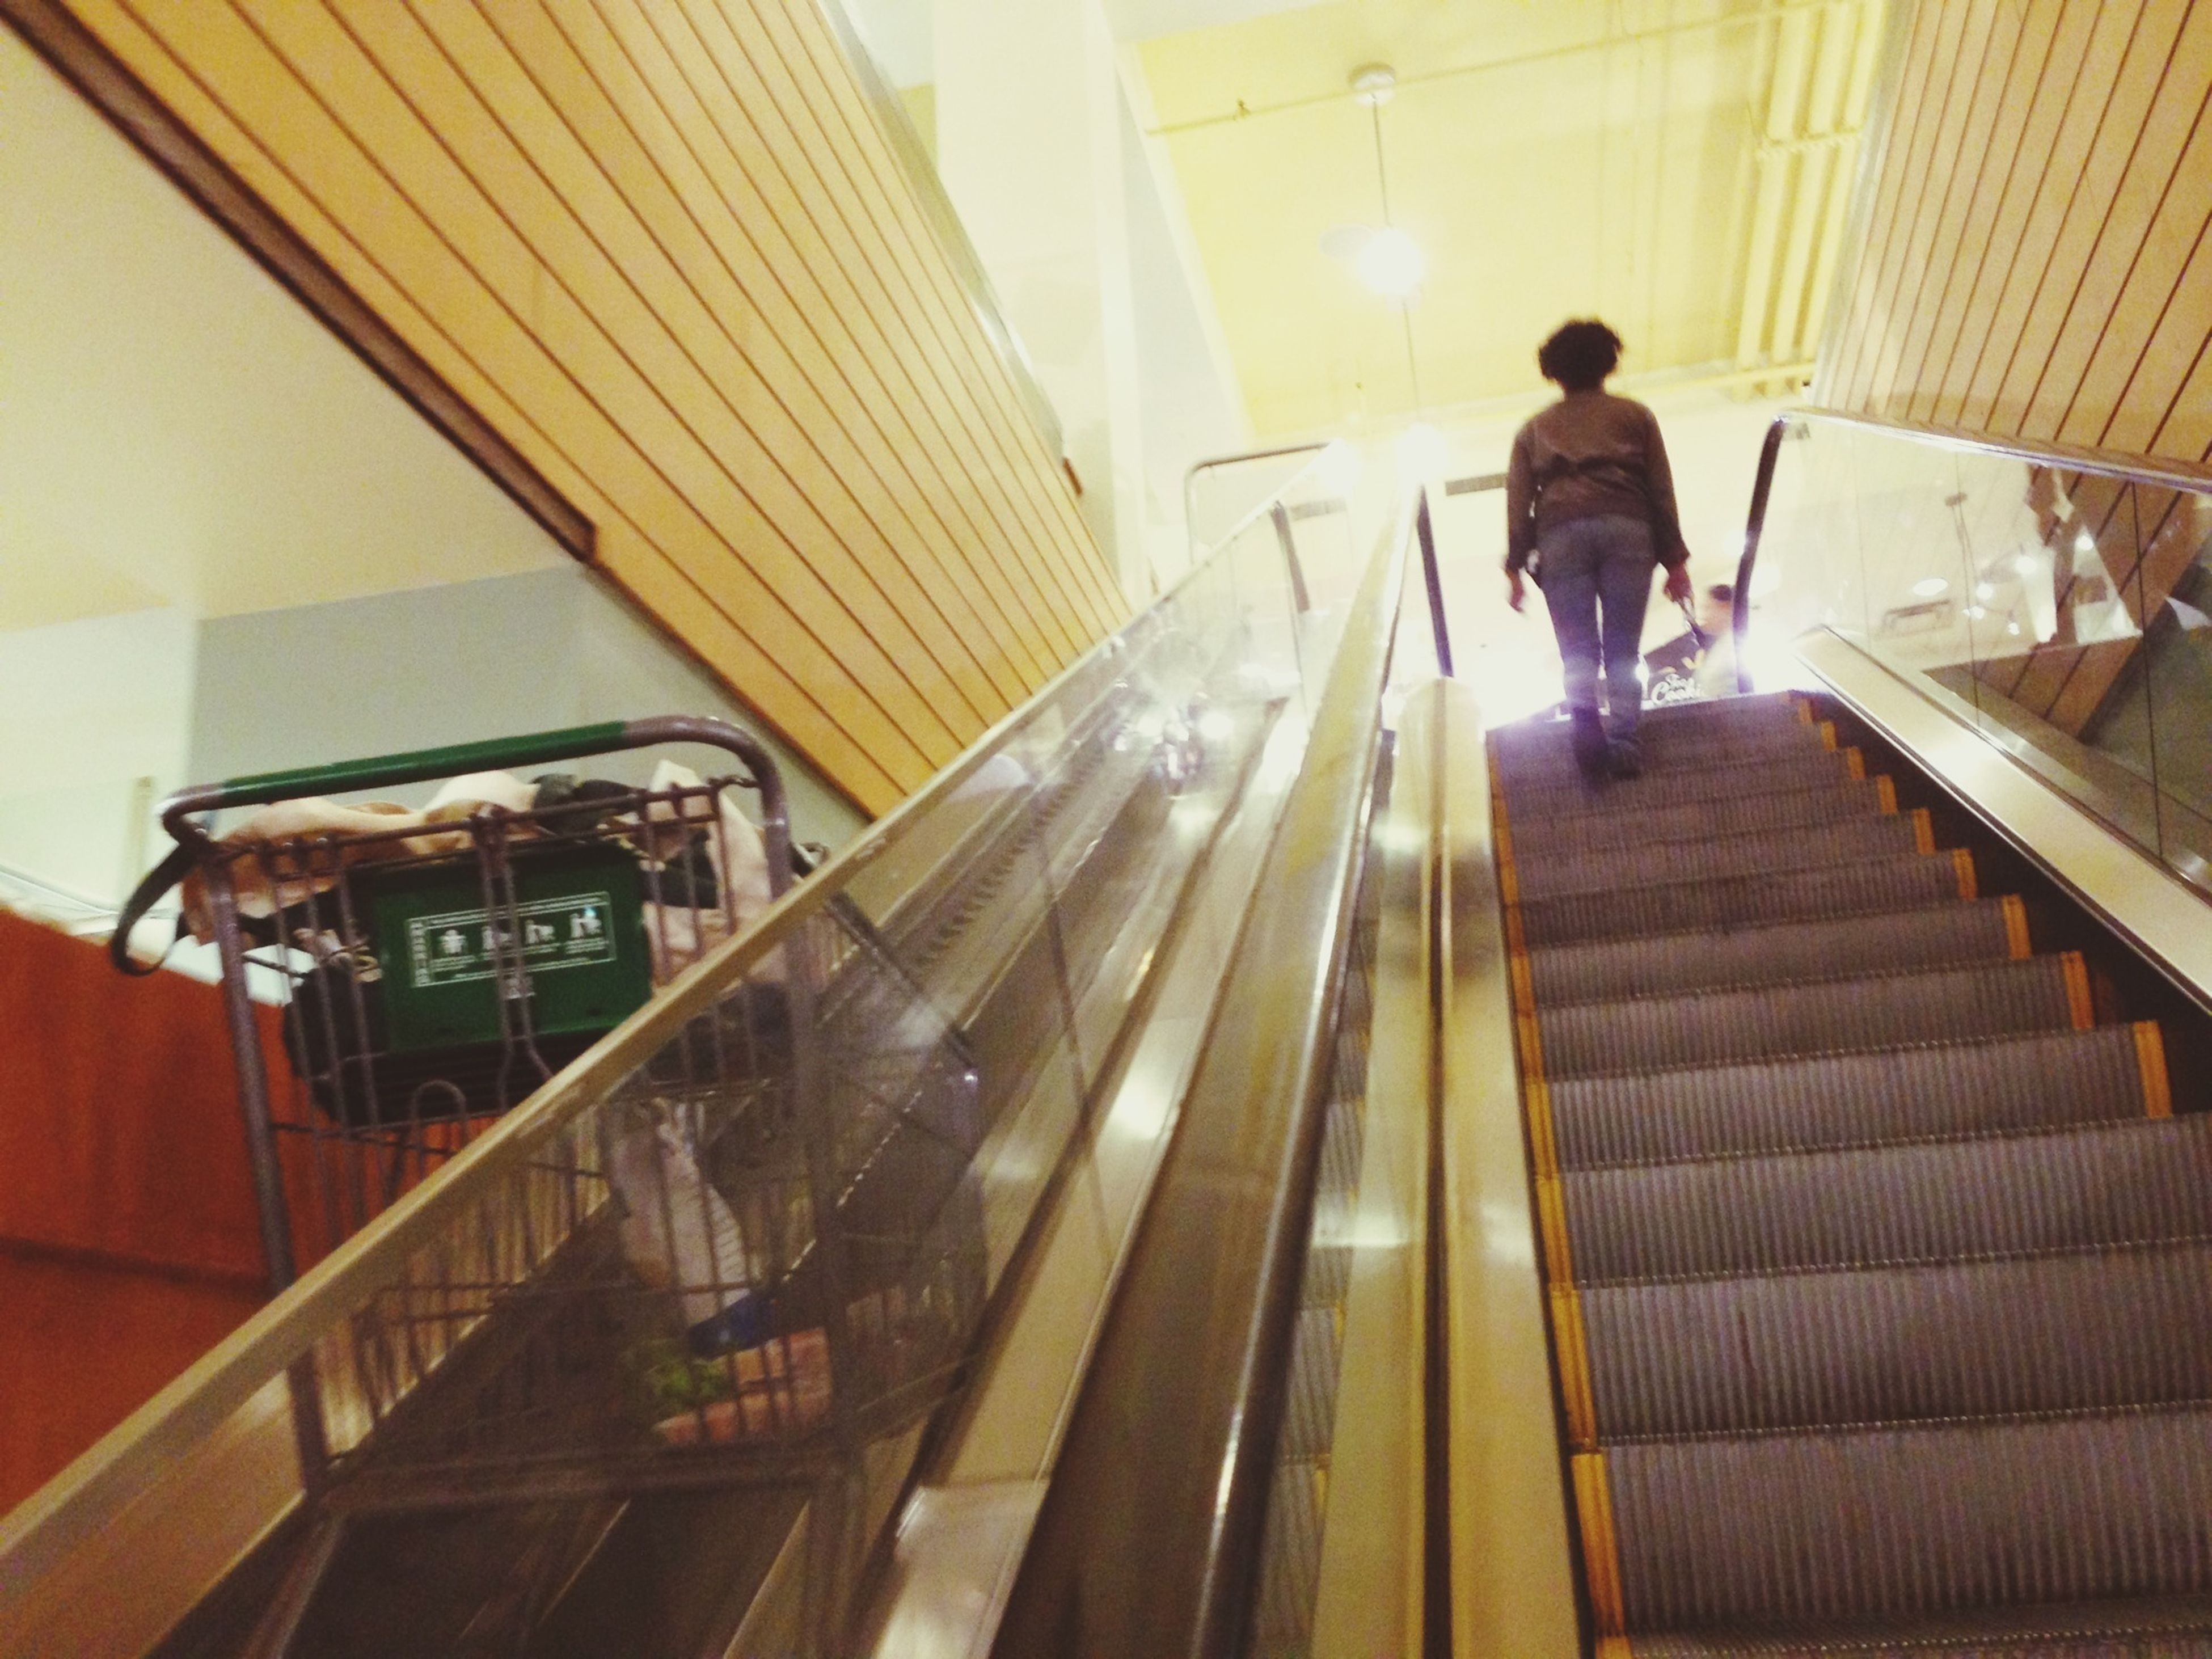 indoors, lifestyles, men, full length, steps, steps and staircases, walking, staircase, rear view, escalator, railing, leisure activity, person, built structure, standing, architecture, casual clothing